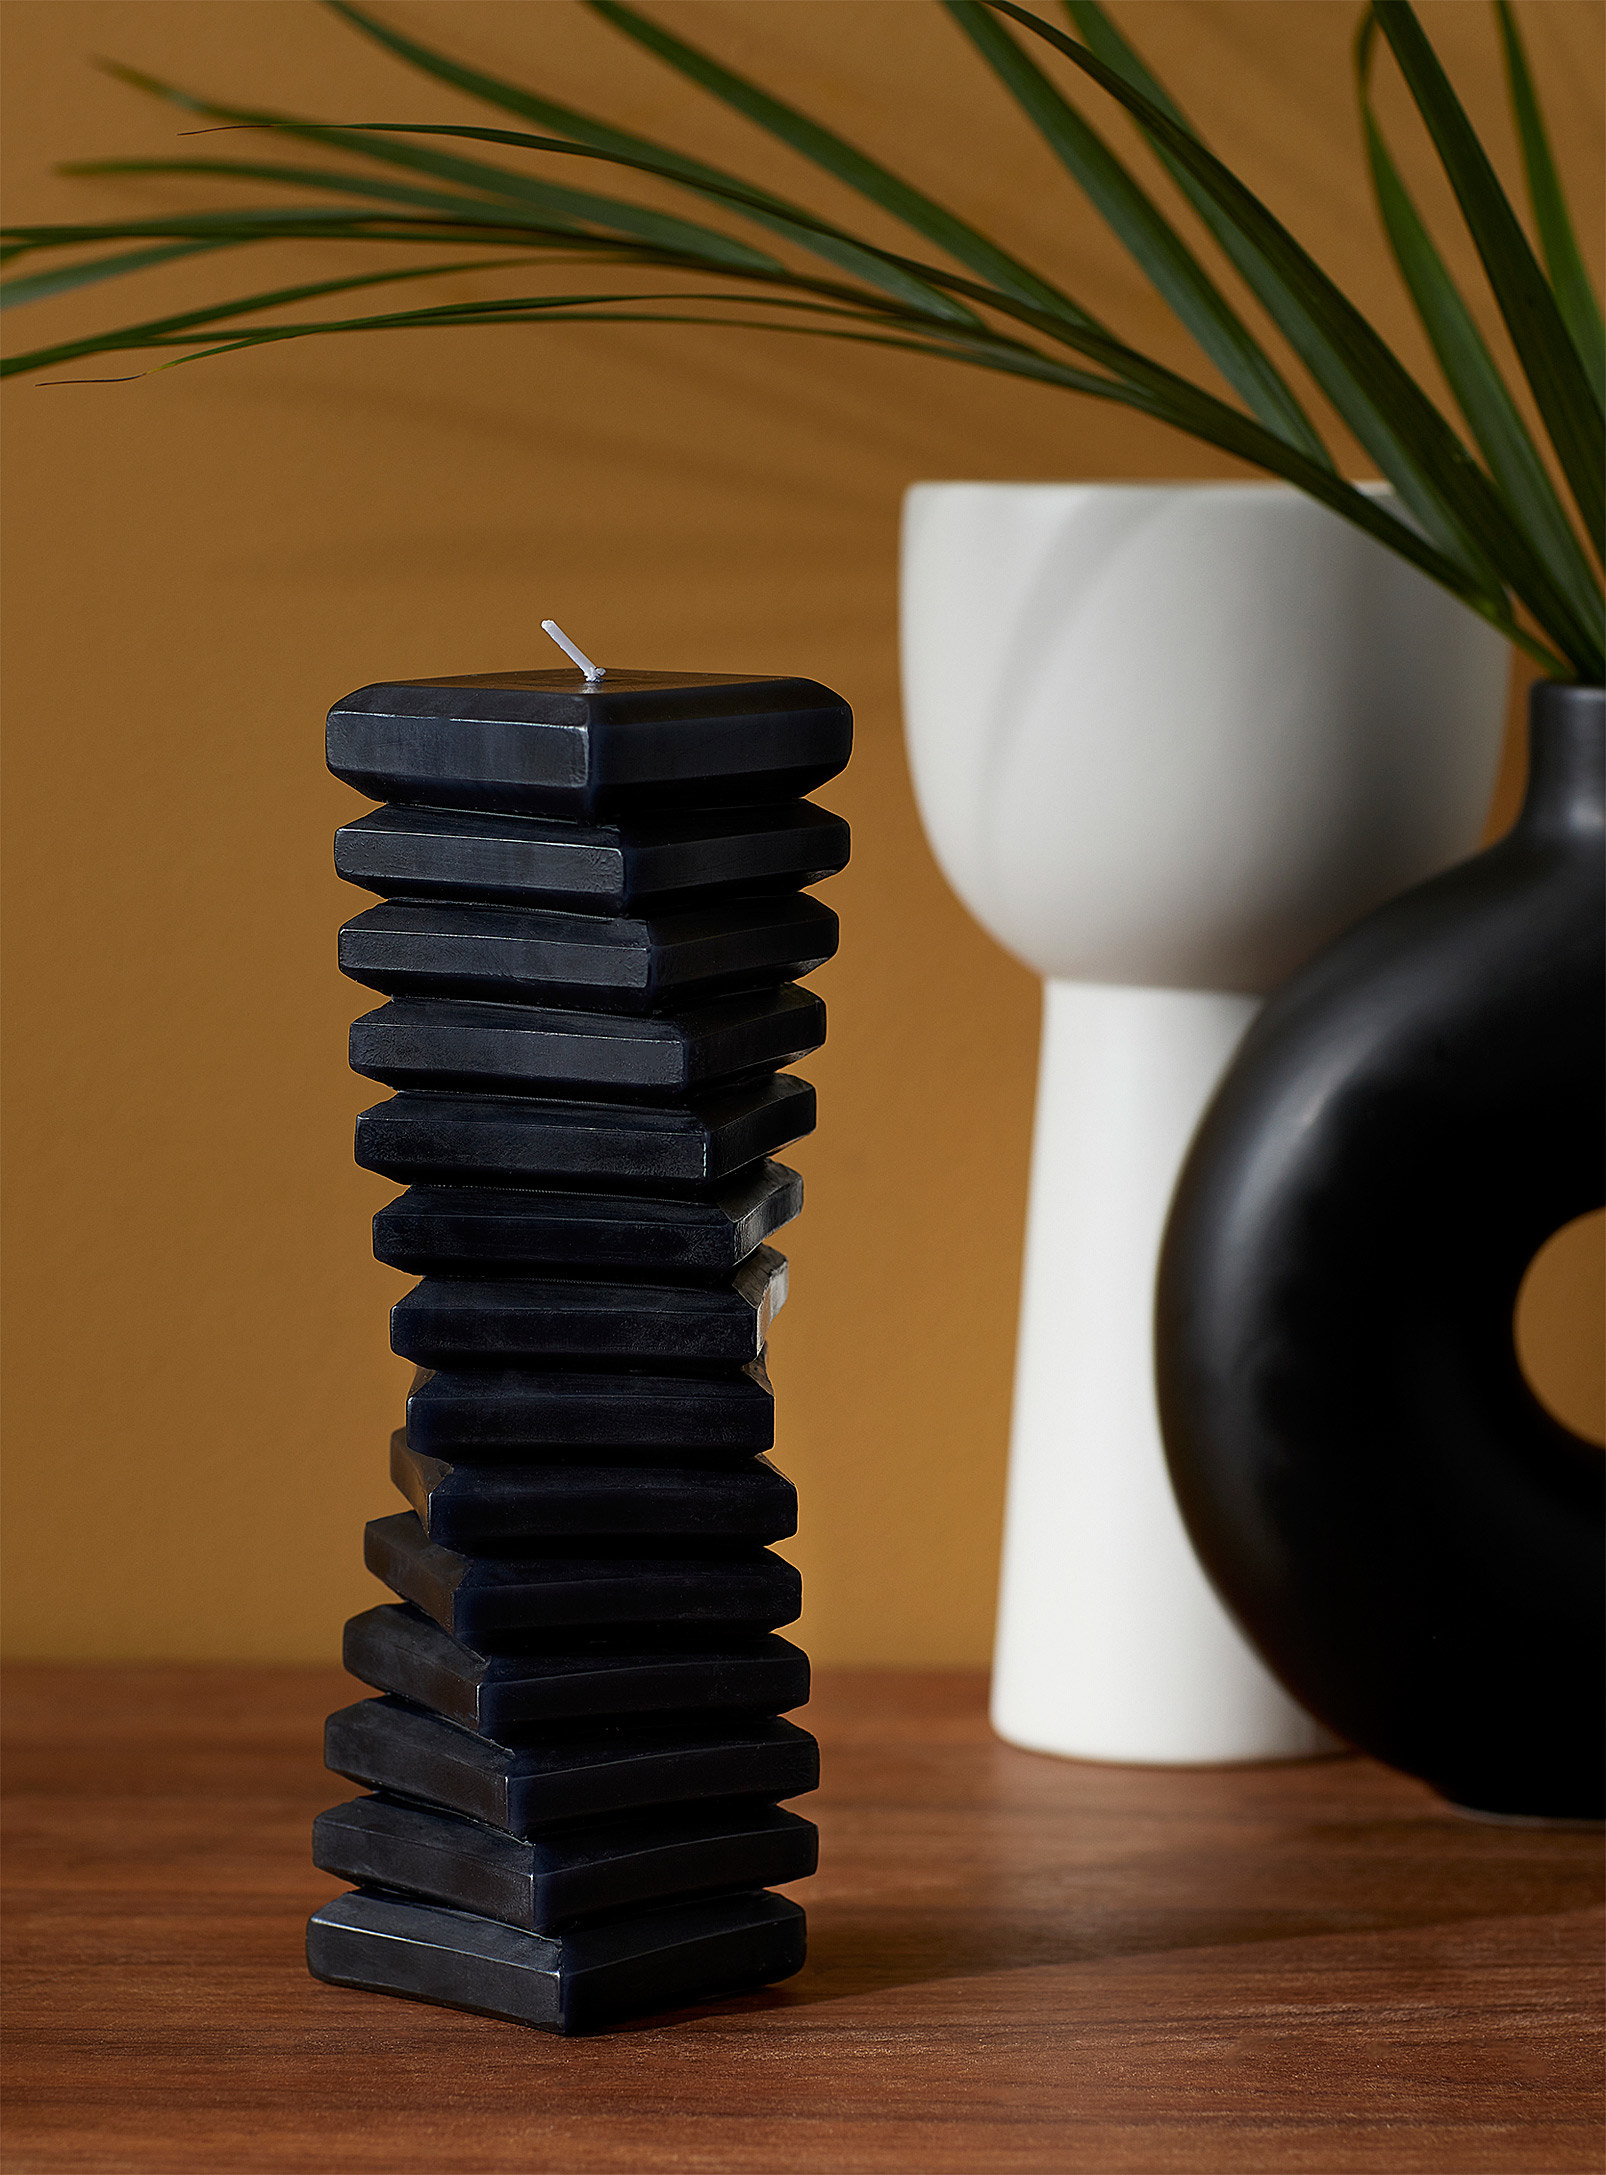 A tall thin spiral shaped candle